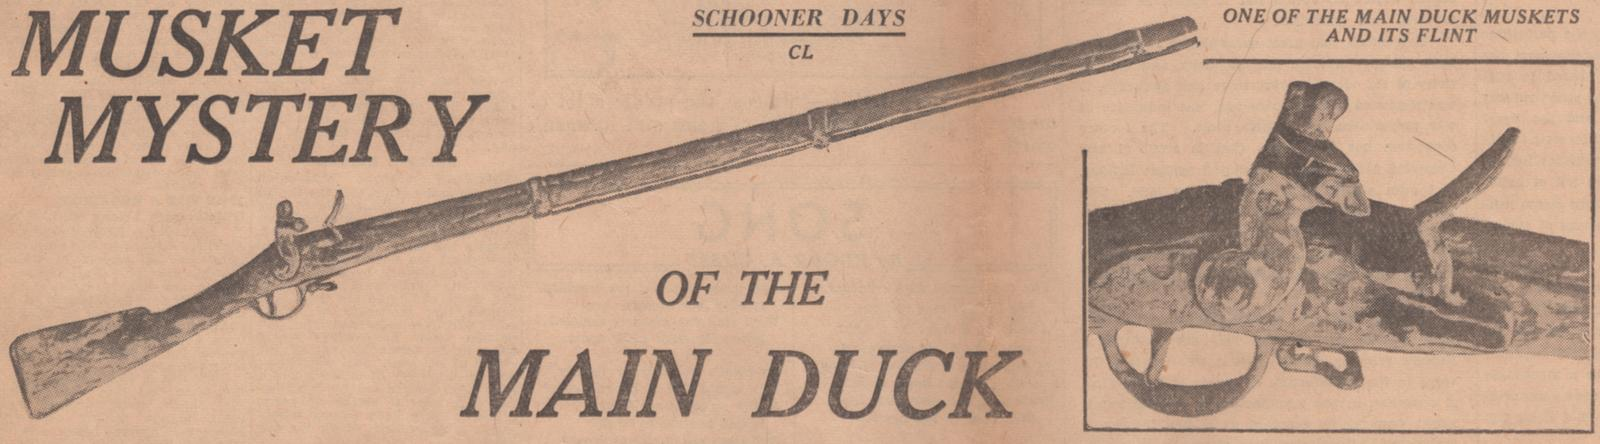 Musket Mystery of the Main Duck: Schooner Days CL (150)